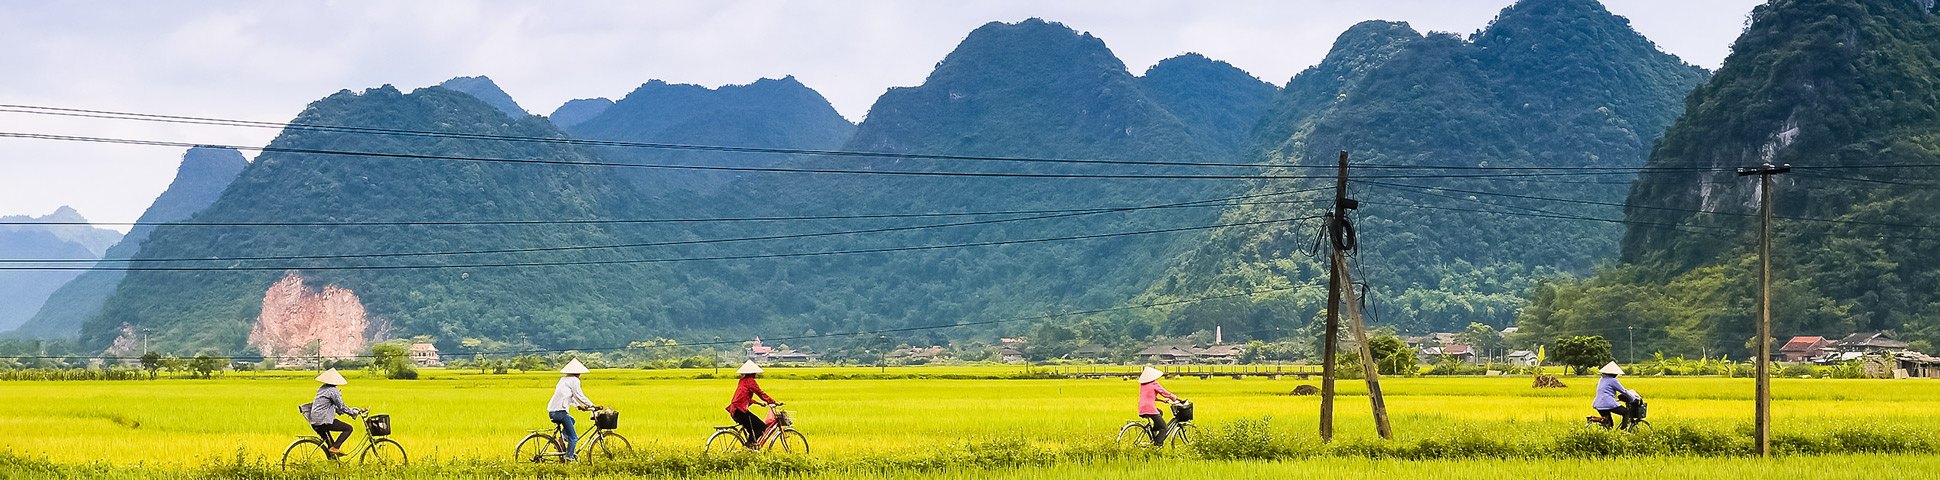 Cycle along Red River Delta